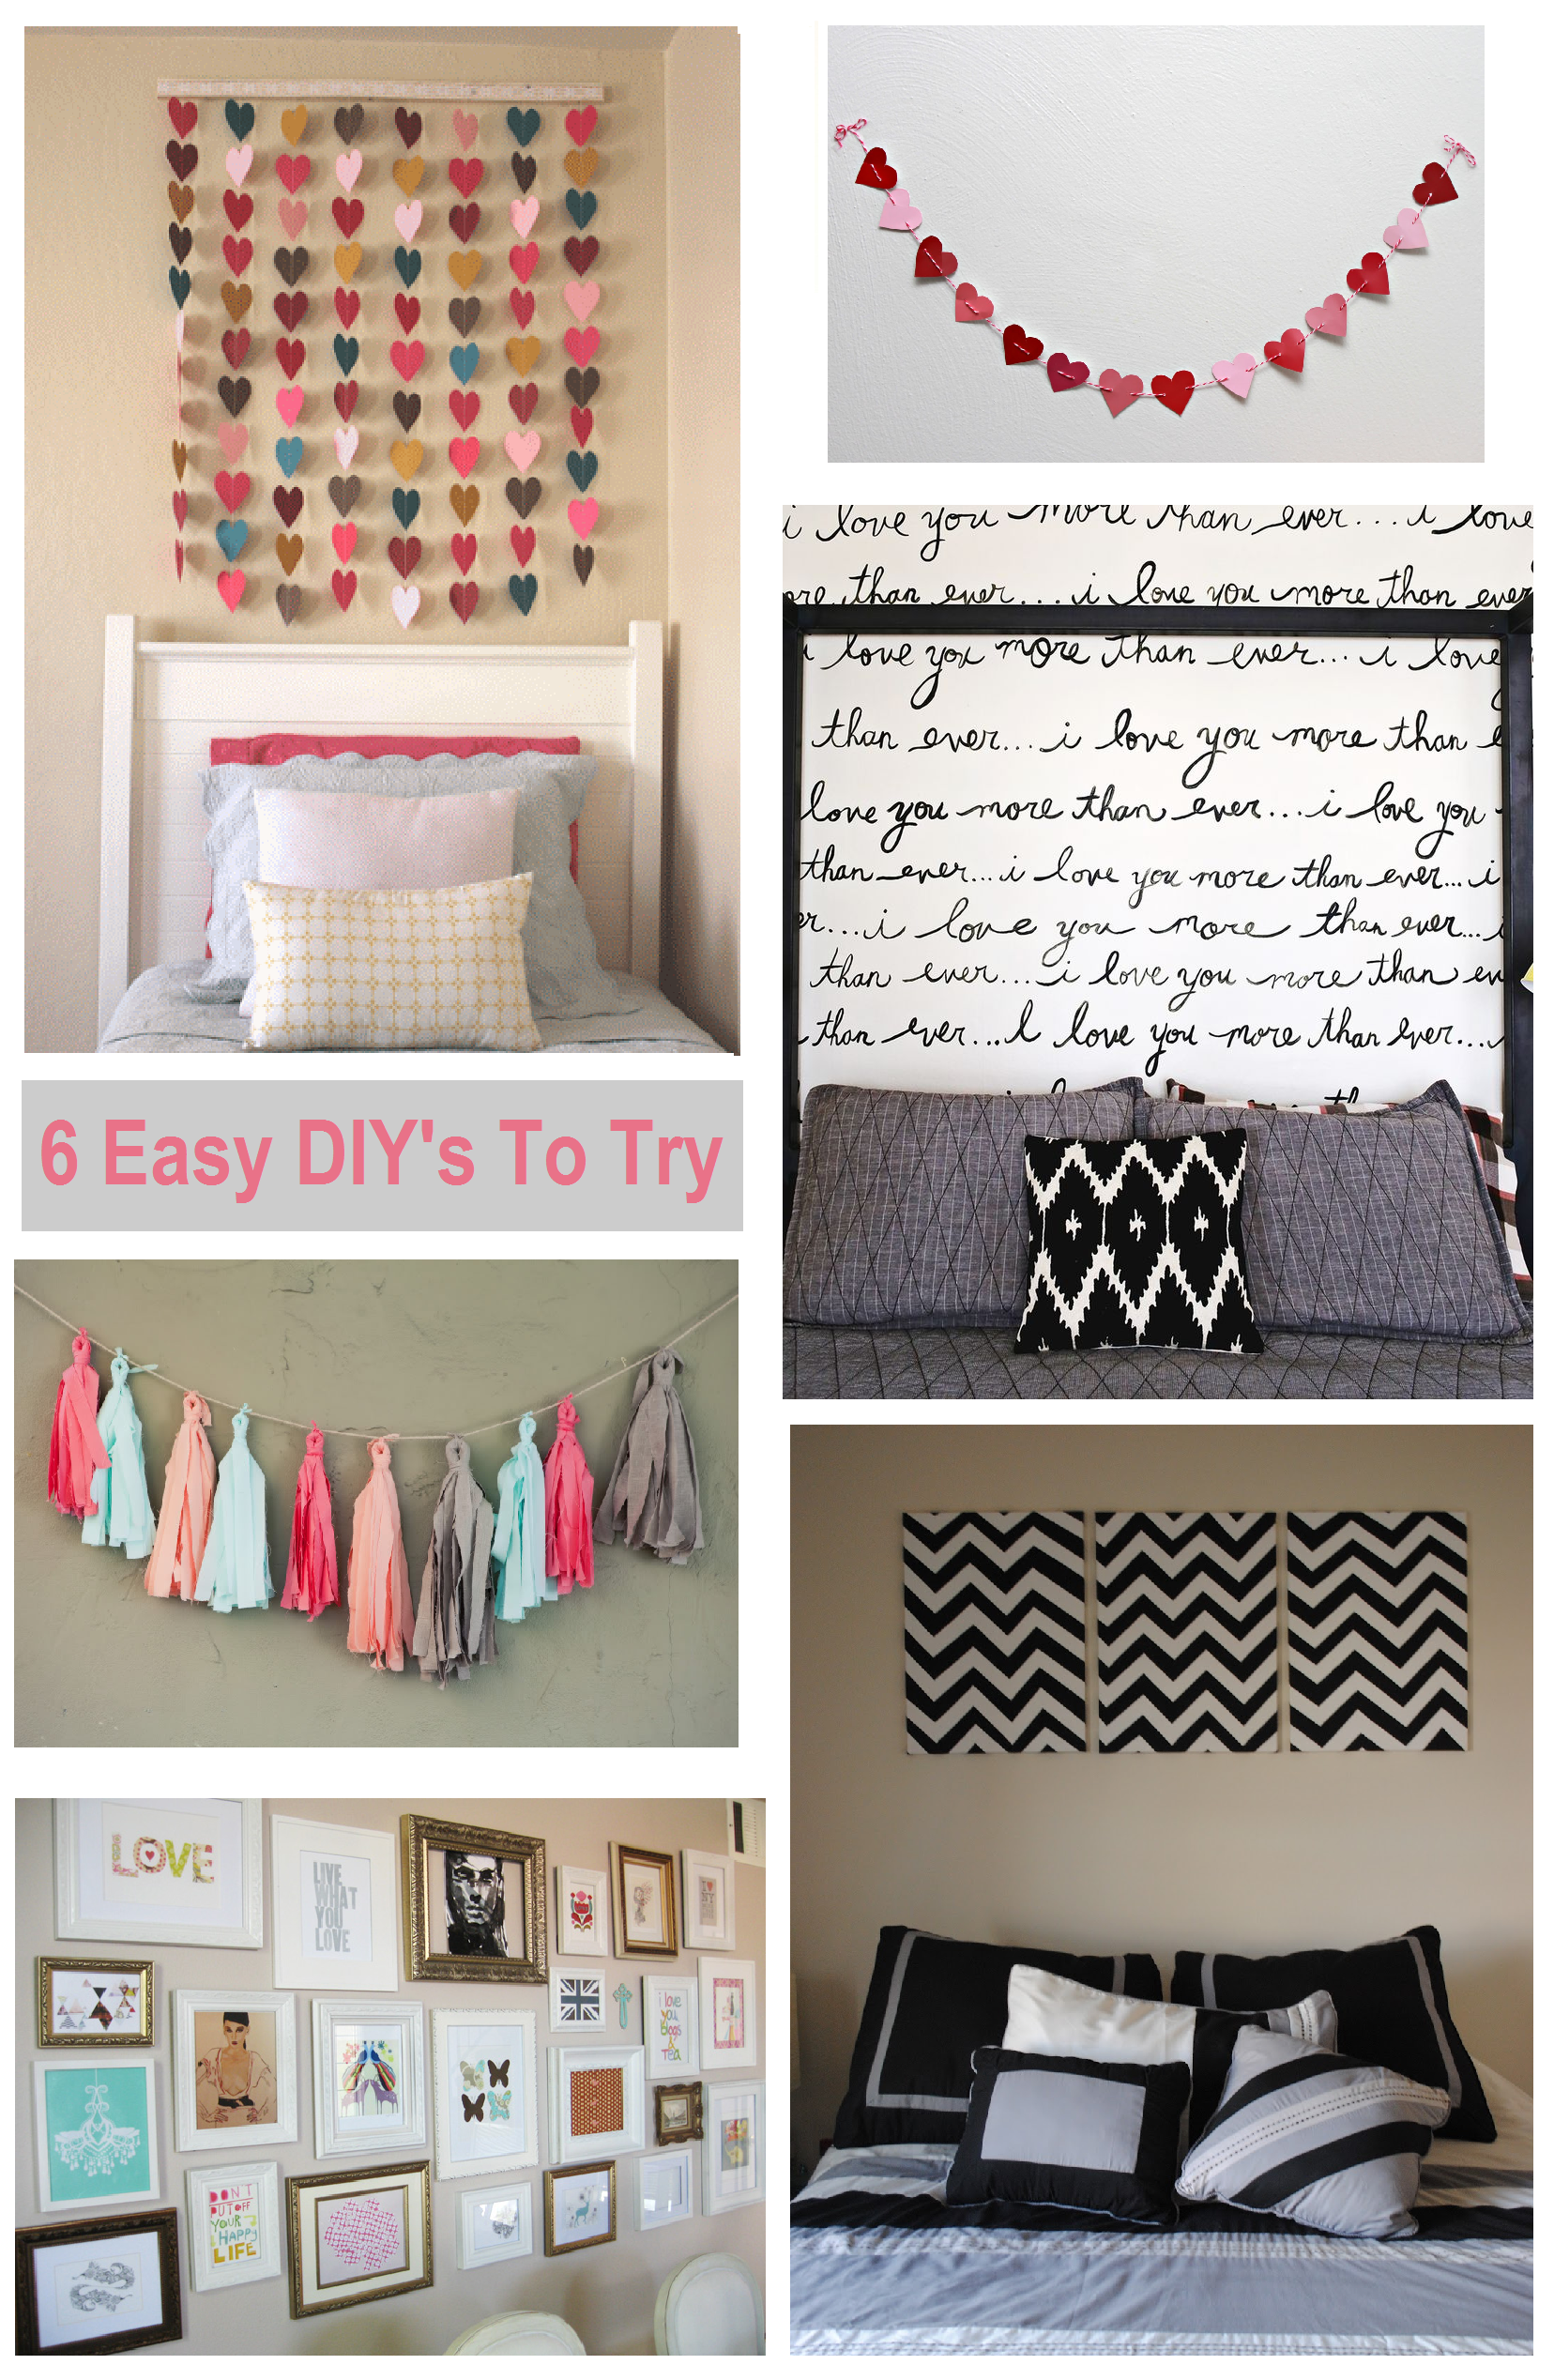 6 diy bedroom wall art ideas shopgirl - Bedroom decorations diy ...